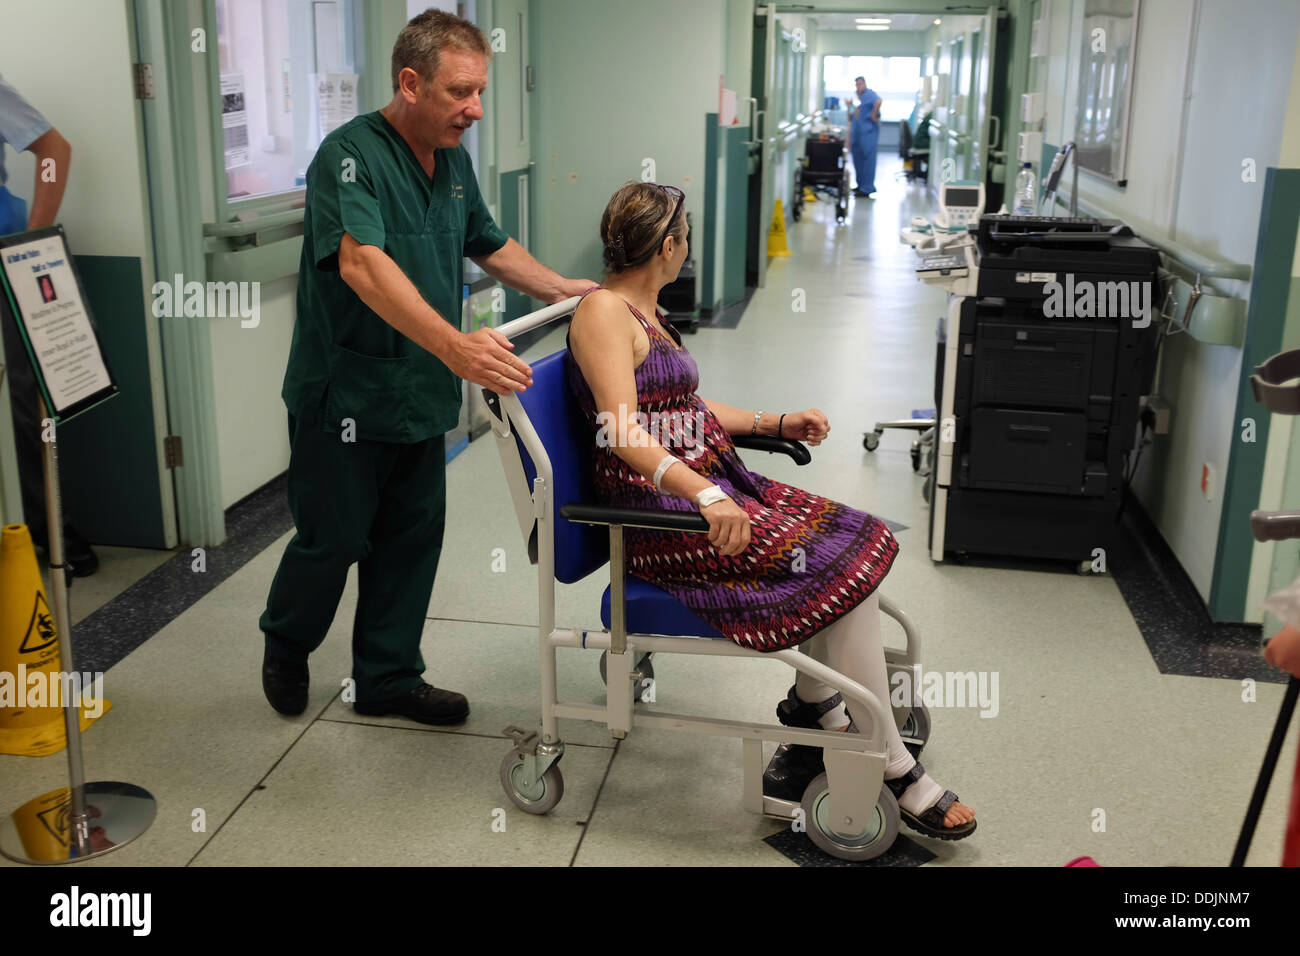 wheelchair nhs swing chair cushion covers a hospital porter helping woman being discharged from